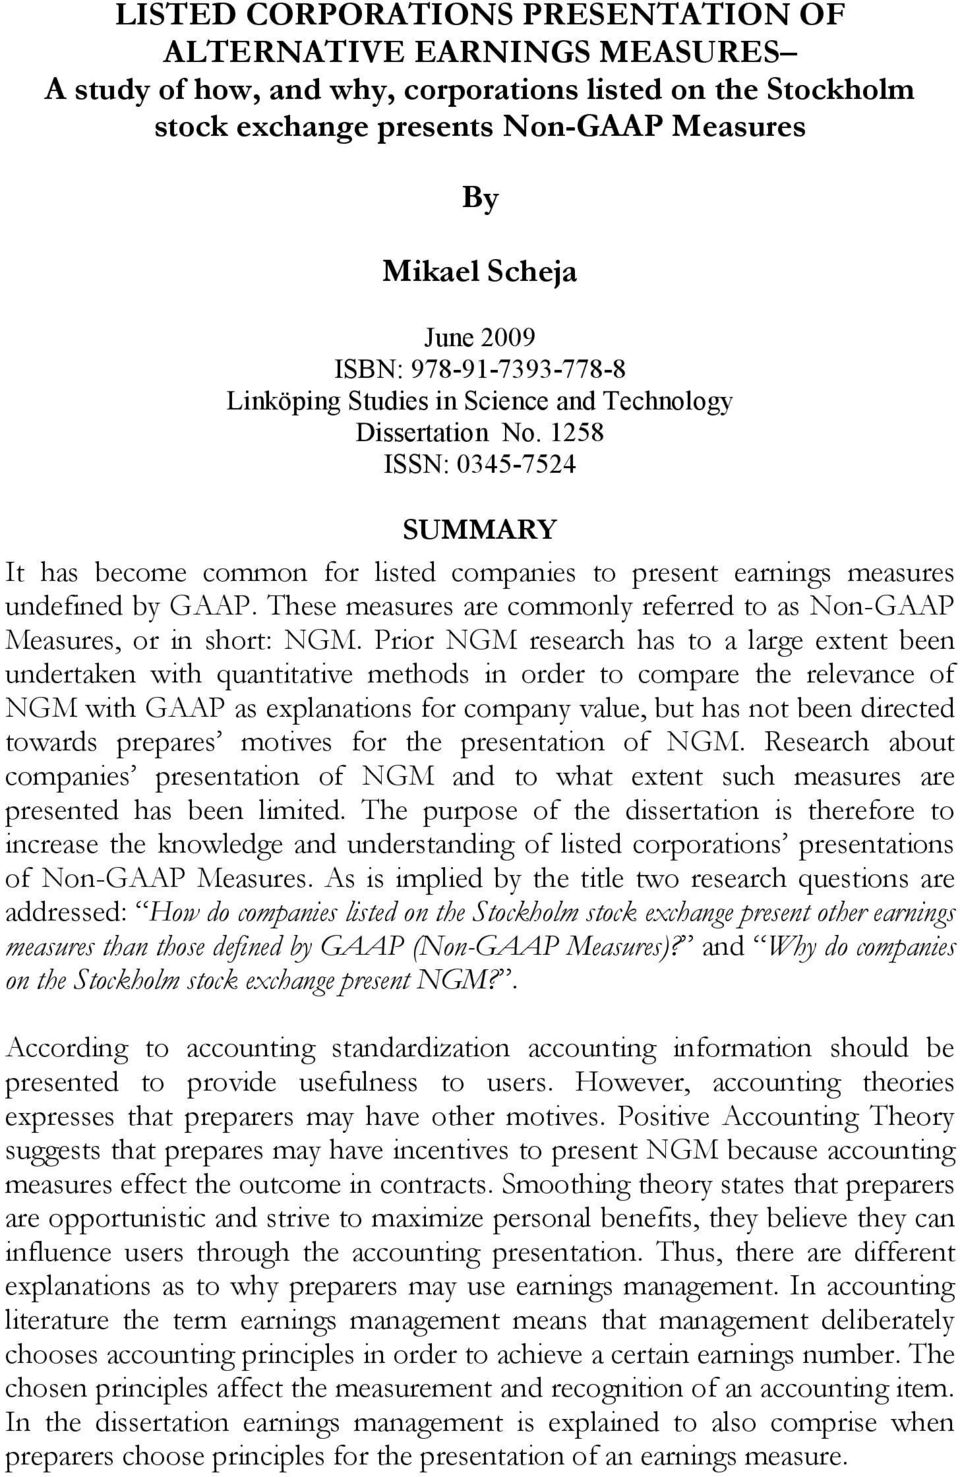 1258 ISSN: 0345-7524 SUMMARY It has become common for listed companies to present earnings measures undefined by GAAP. These measures are commonly referred to as Non-GAAP Measures, or in short: NGM.